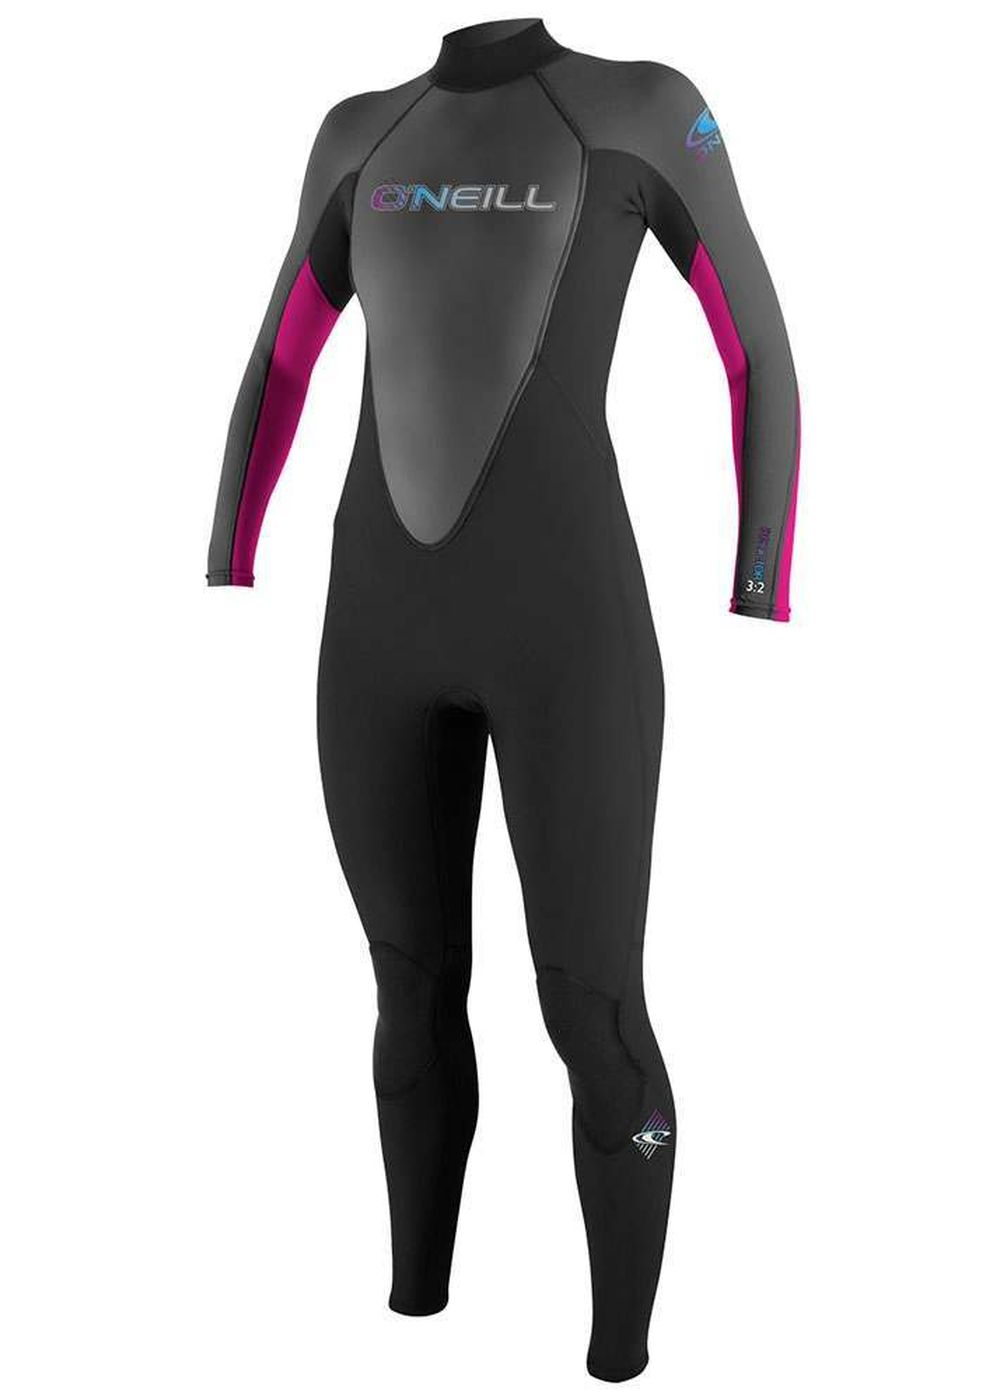 Oneill Womens Reactor 3/2 Wetsuit Blk/graph/berry Picture